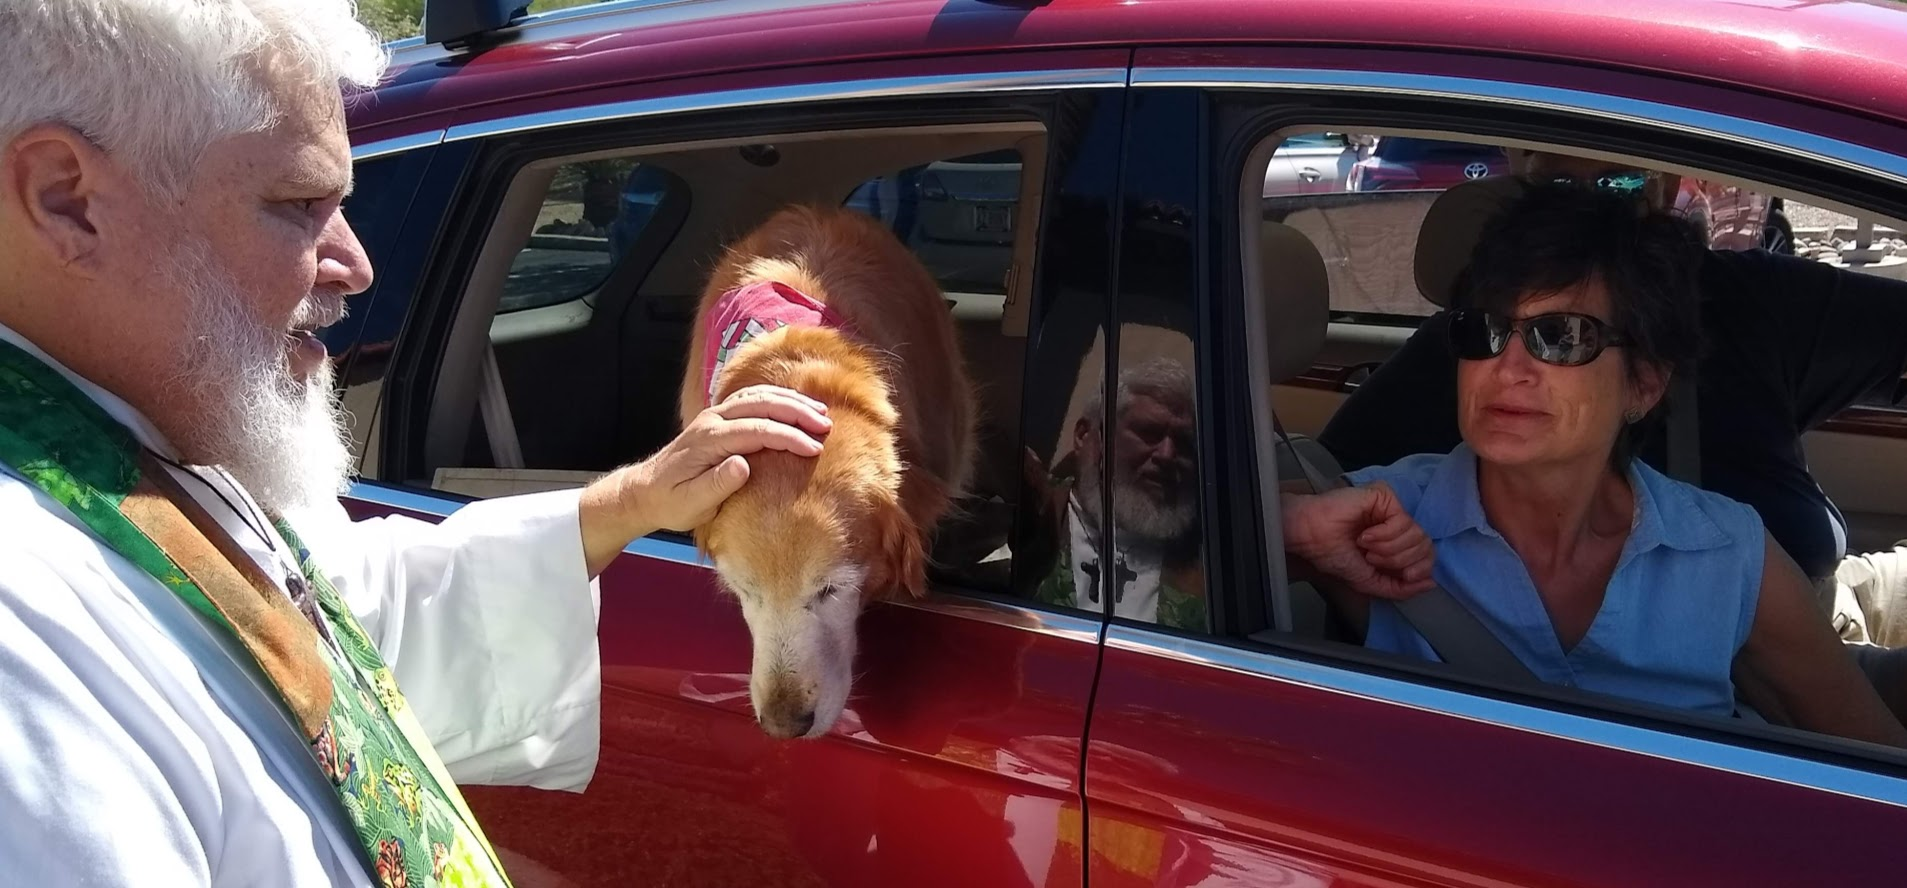 casas adobes blessing of the animals.jpg